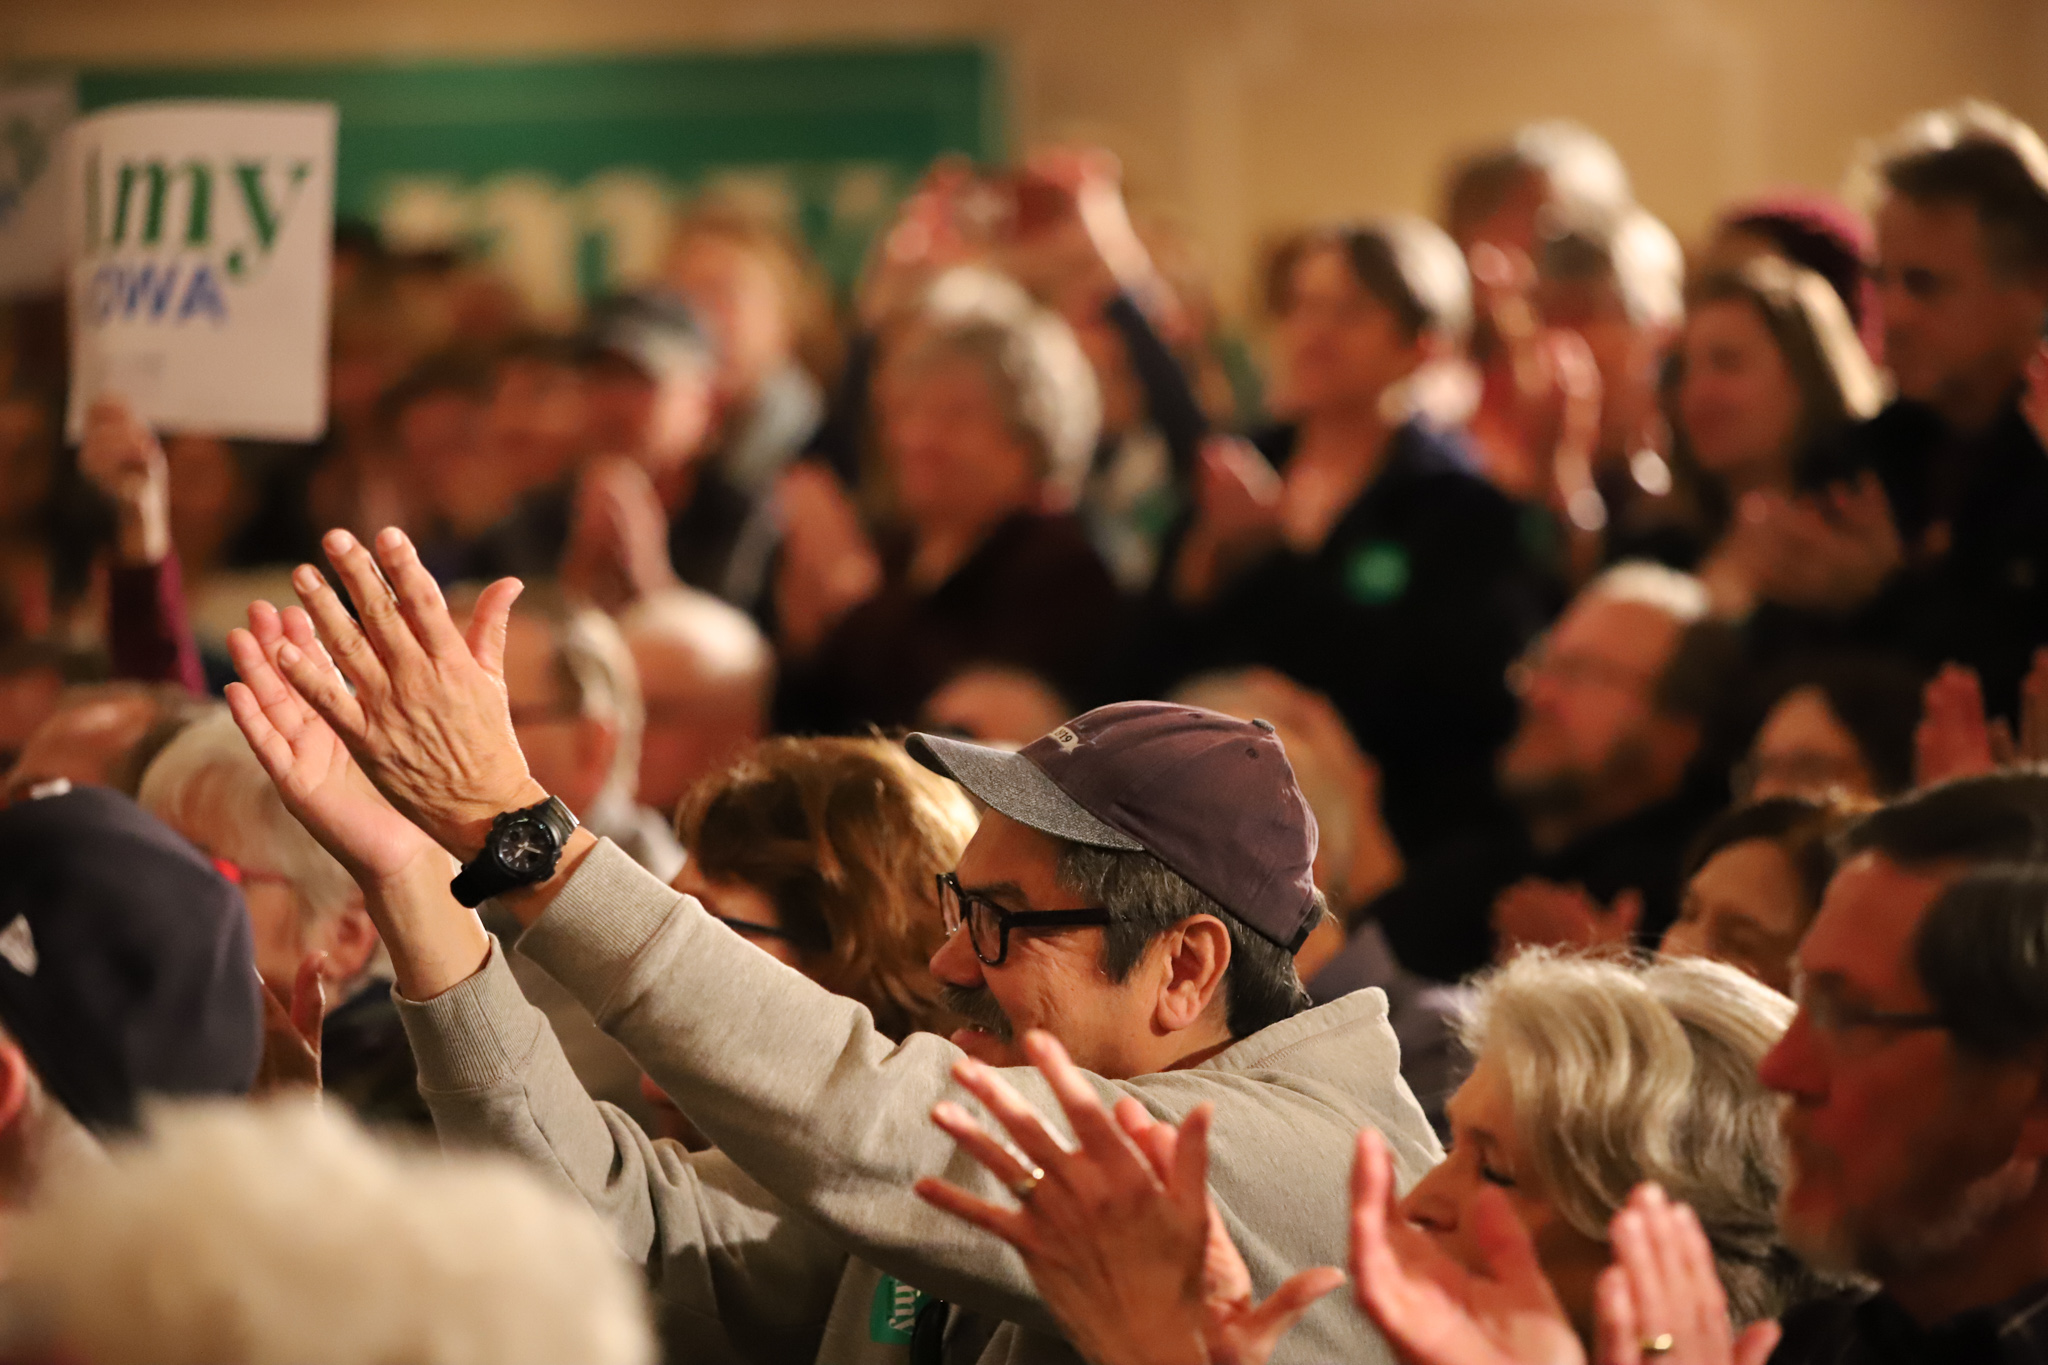 Voters clapping for Klobuchar. (Patsy Newitt, 14 East)